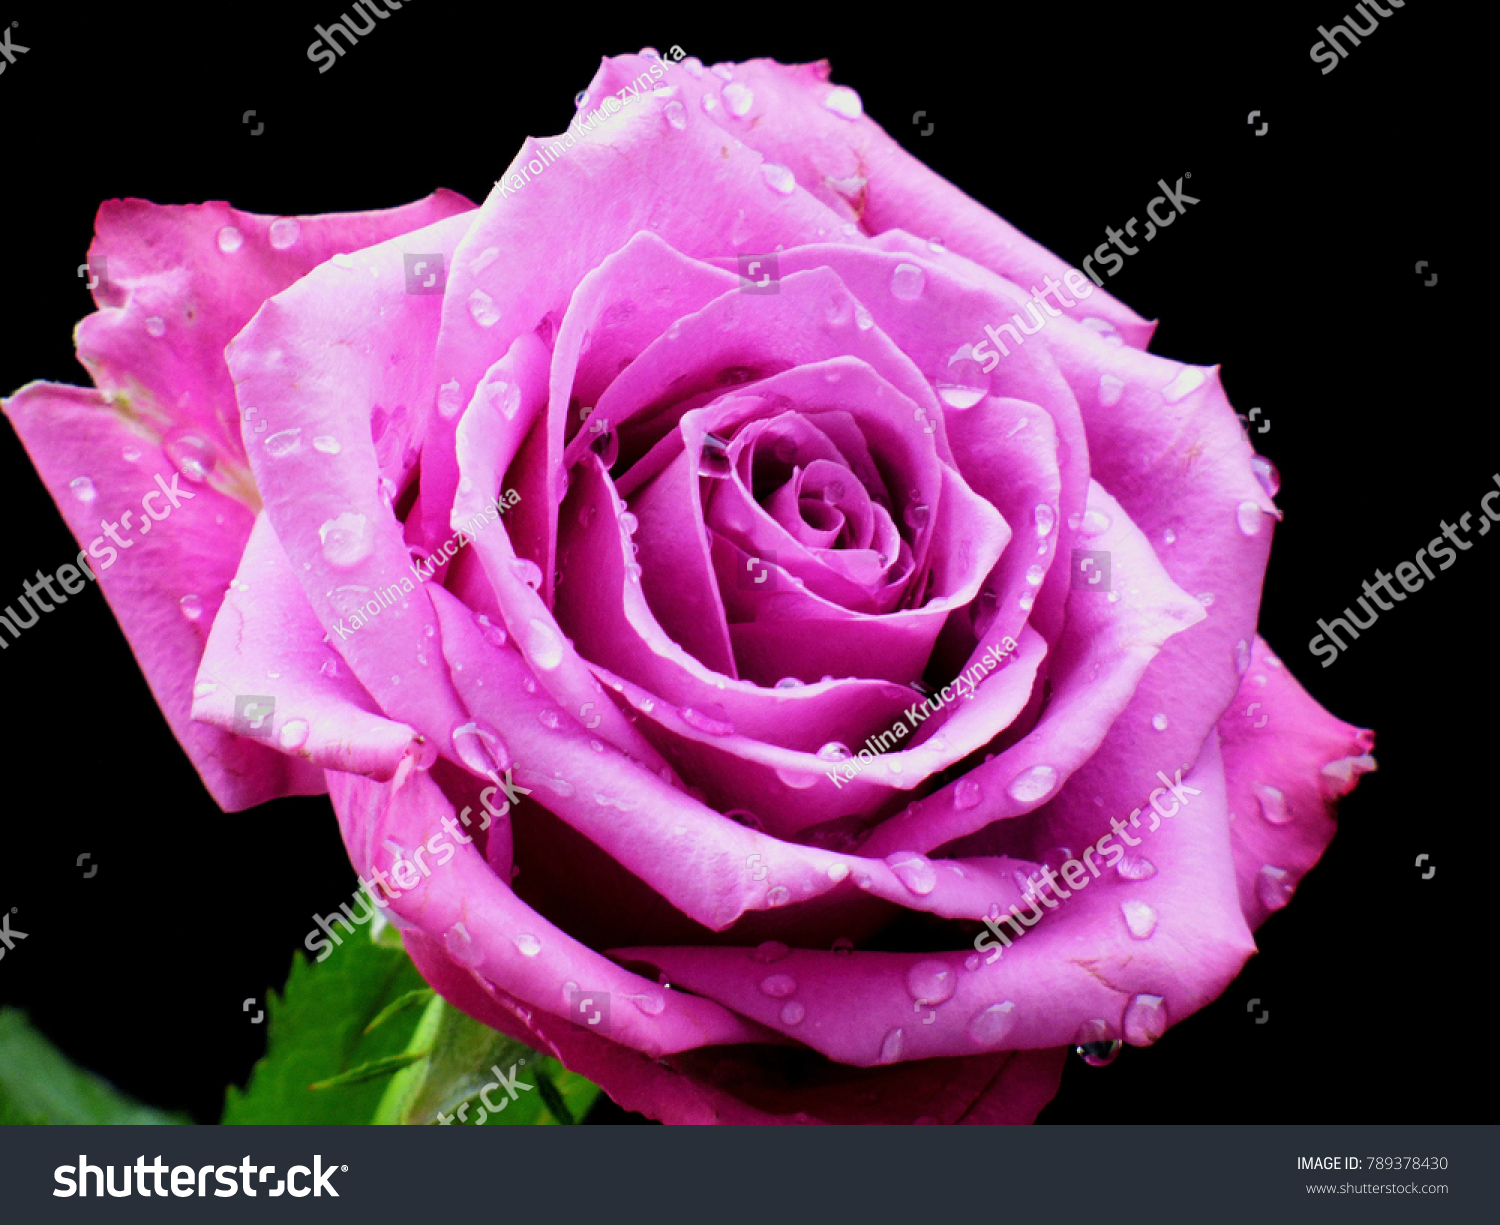 Single flower beautiful pink rose water stock photo edit now single flower beautiful pink rose with water drops on the black background closeup izmirmasajfo